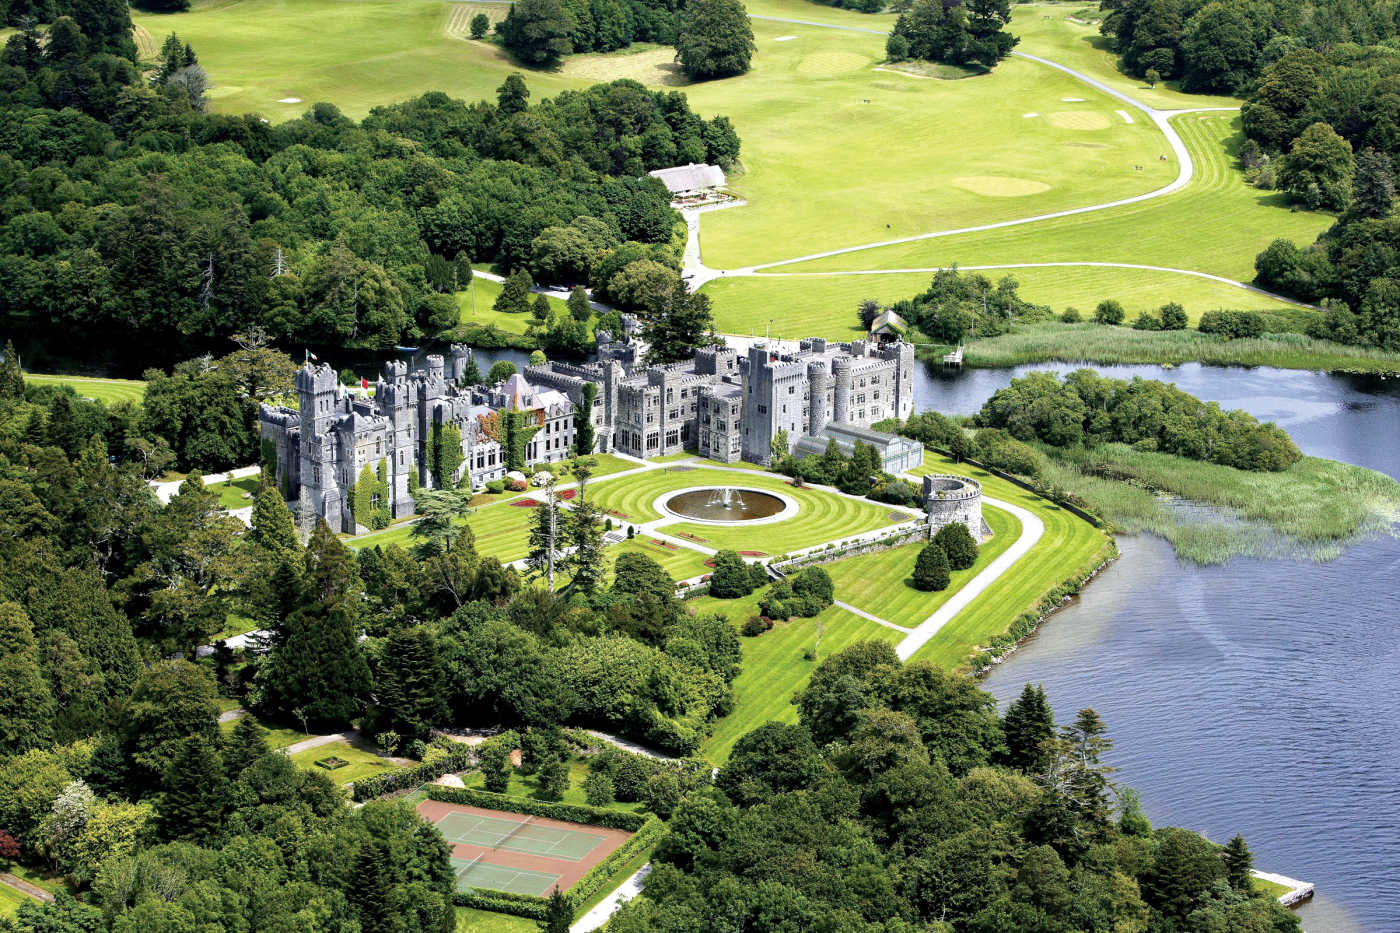 6Nt Ireland Flight, Castle, & B&B Pkg w/ Car from $1,928 for 2